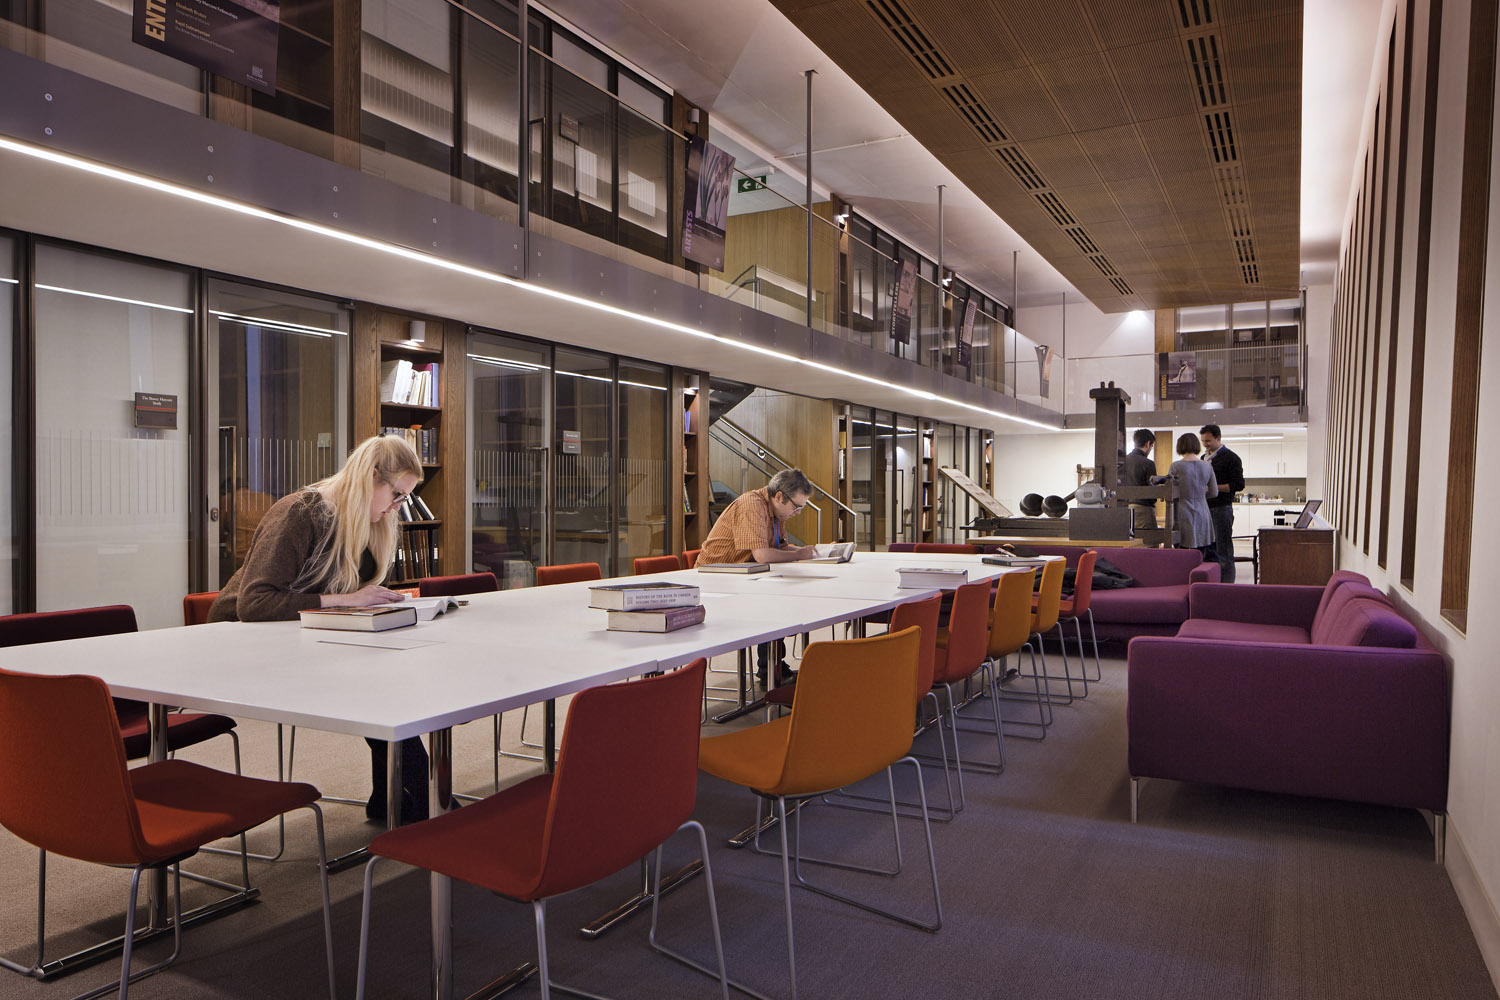 The Visiting Scholar's Center in the Weston Library - part of the Bodleian Libraries, University of Oxford, Oxford, UK